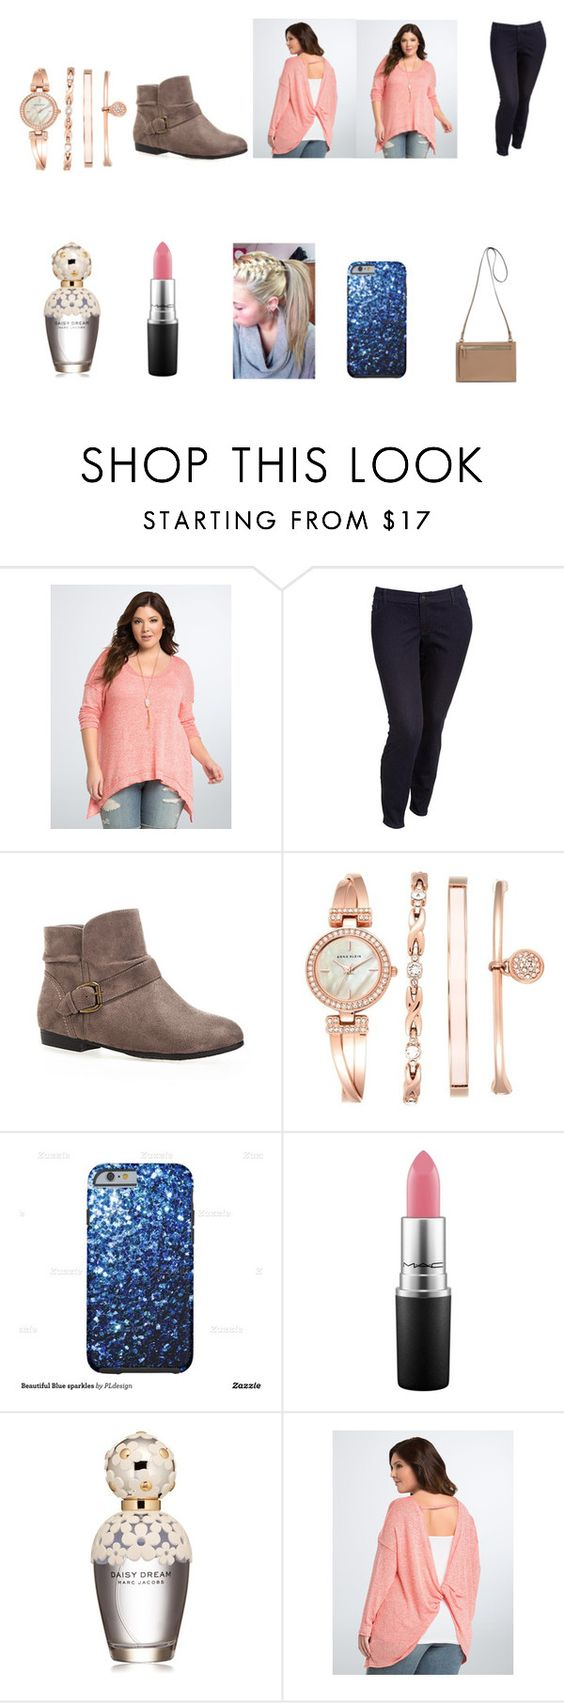 """Untitled #265"" by bleachbrains on Polyvore featuring Torrid, Old Navy, Avenue, Anne Klein, MAC Cosmetics and Marc Jacobs"